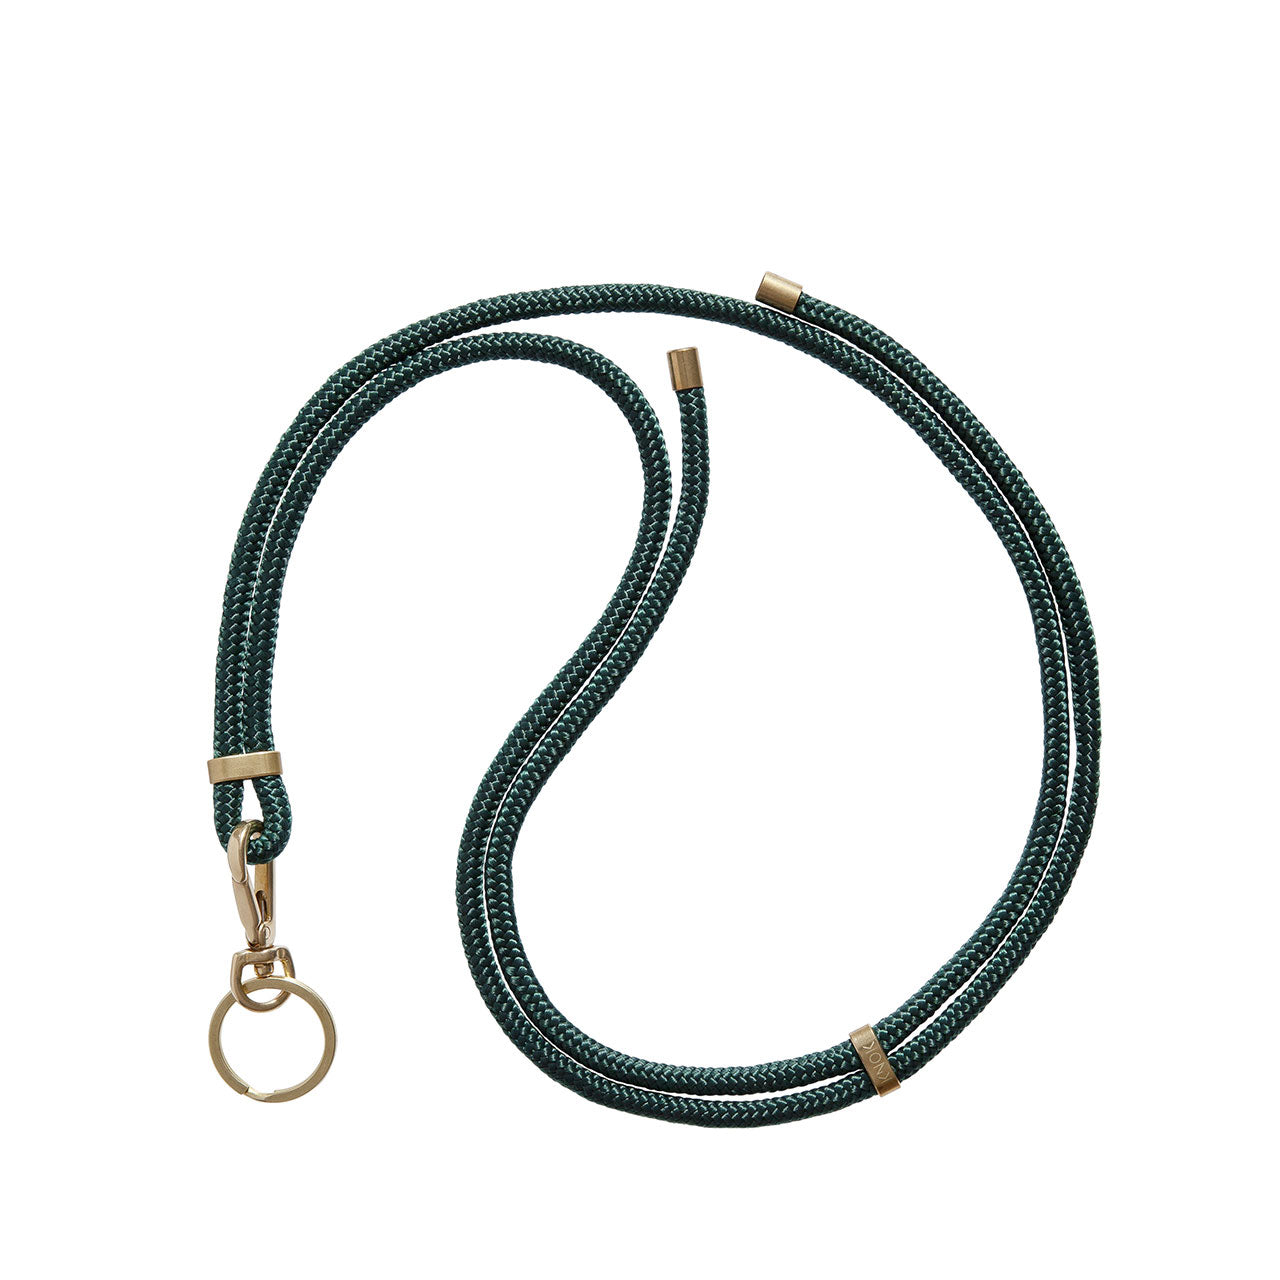 KNOK Key Holder Lanyard in forest green